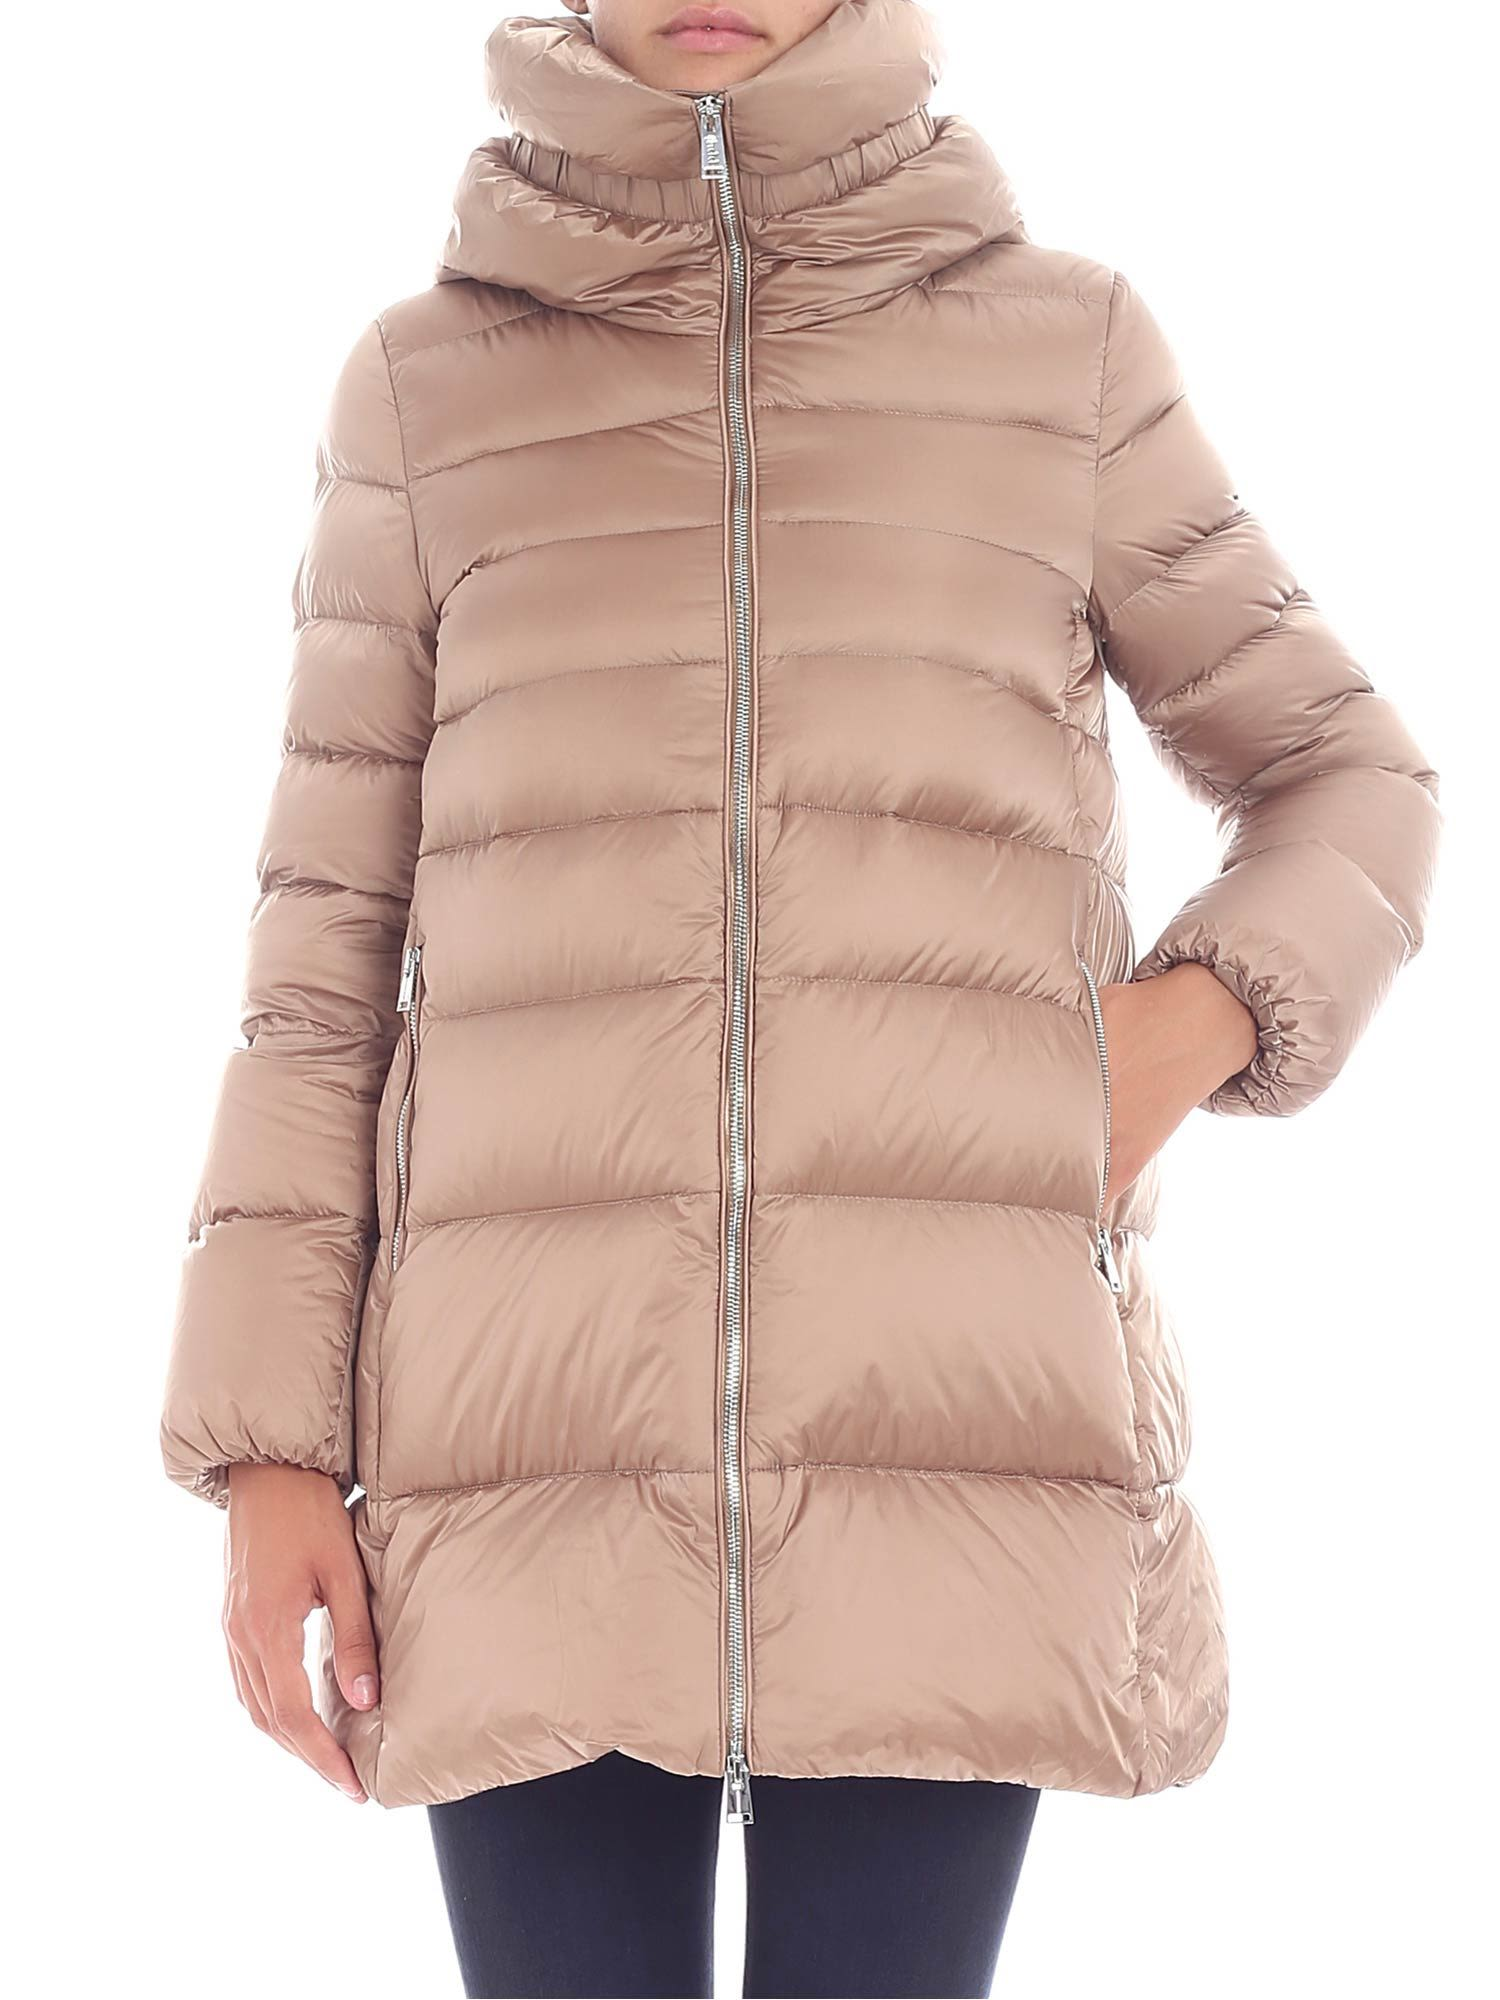 ADD Zipped Padded Jacket in Moka